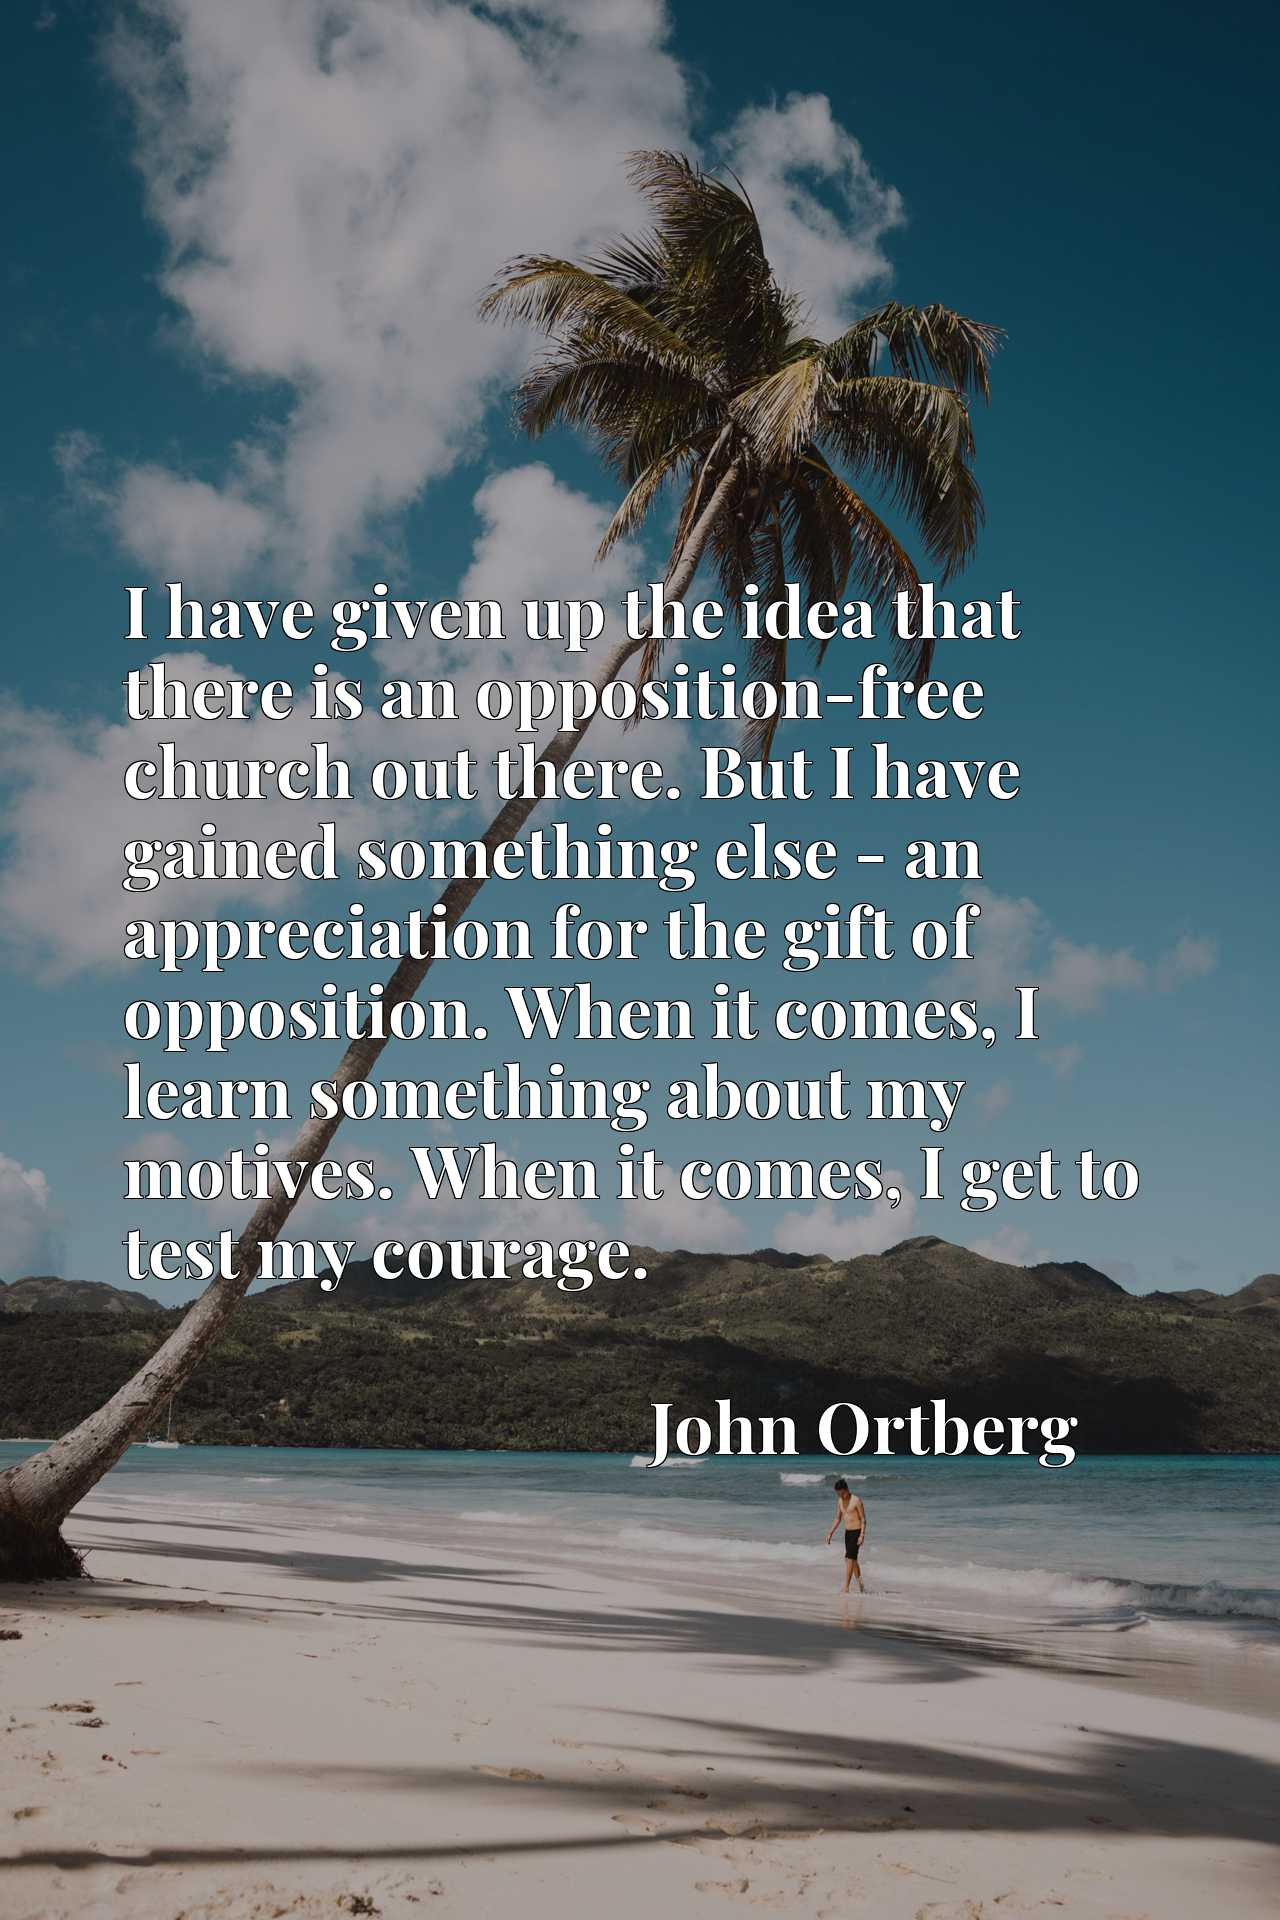 I have given up the idea that there is an opposition-free church out there. But I have gained something else - an appreciation for the gift of opposition. When it comes, I learn something about my motives. When it comes, I get to test my courage.